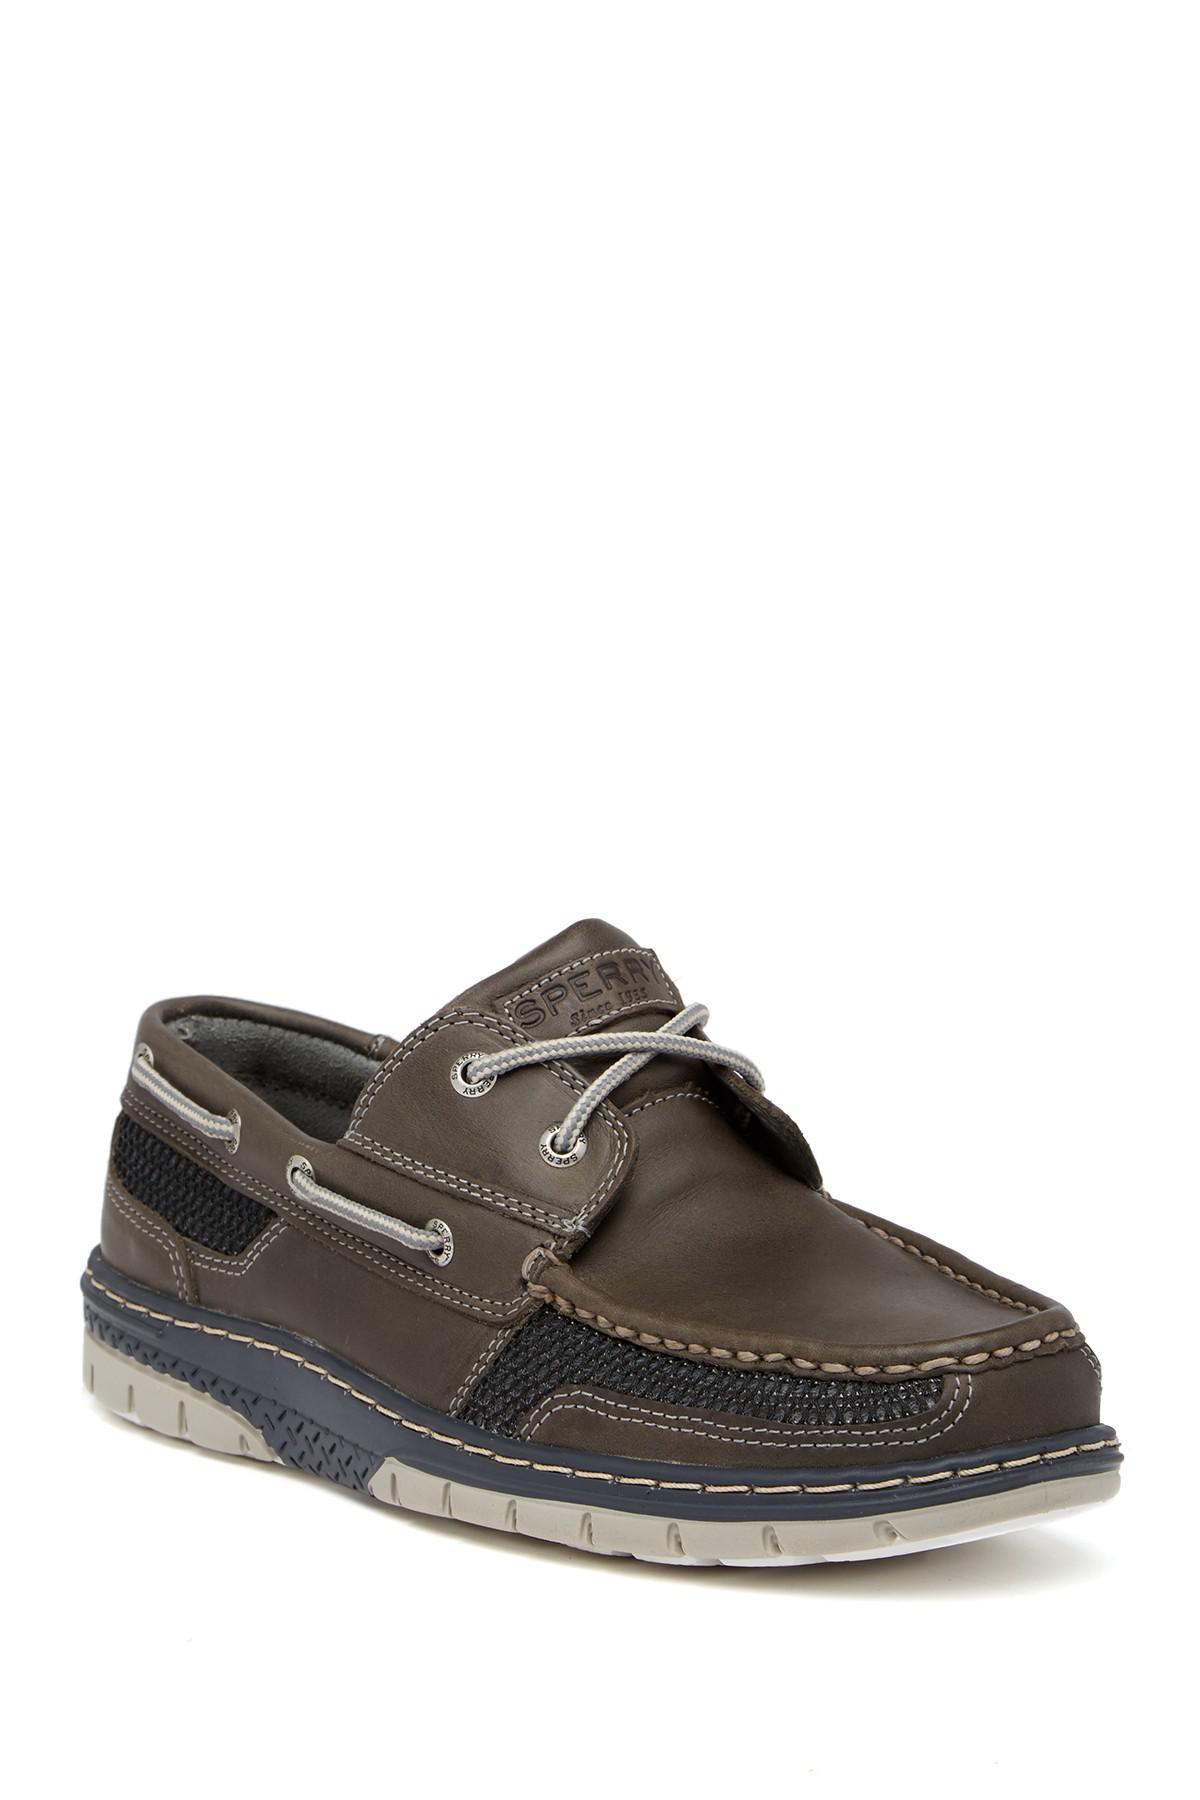 The Dockers® Vargas Boat Shoes are classic hand sewn shoes crafted from rich leather. The upper is made of soft genuine construction. The boat shoes feature patterned chambray linings and have a cushioned EVA foot bed with molded heel cup.